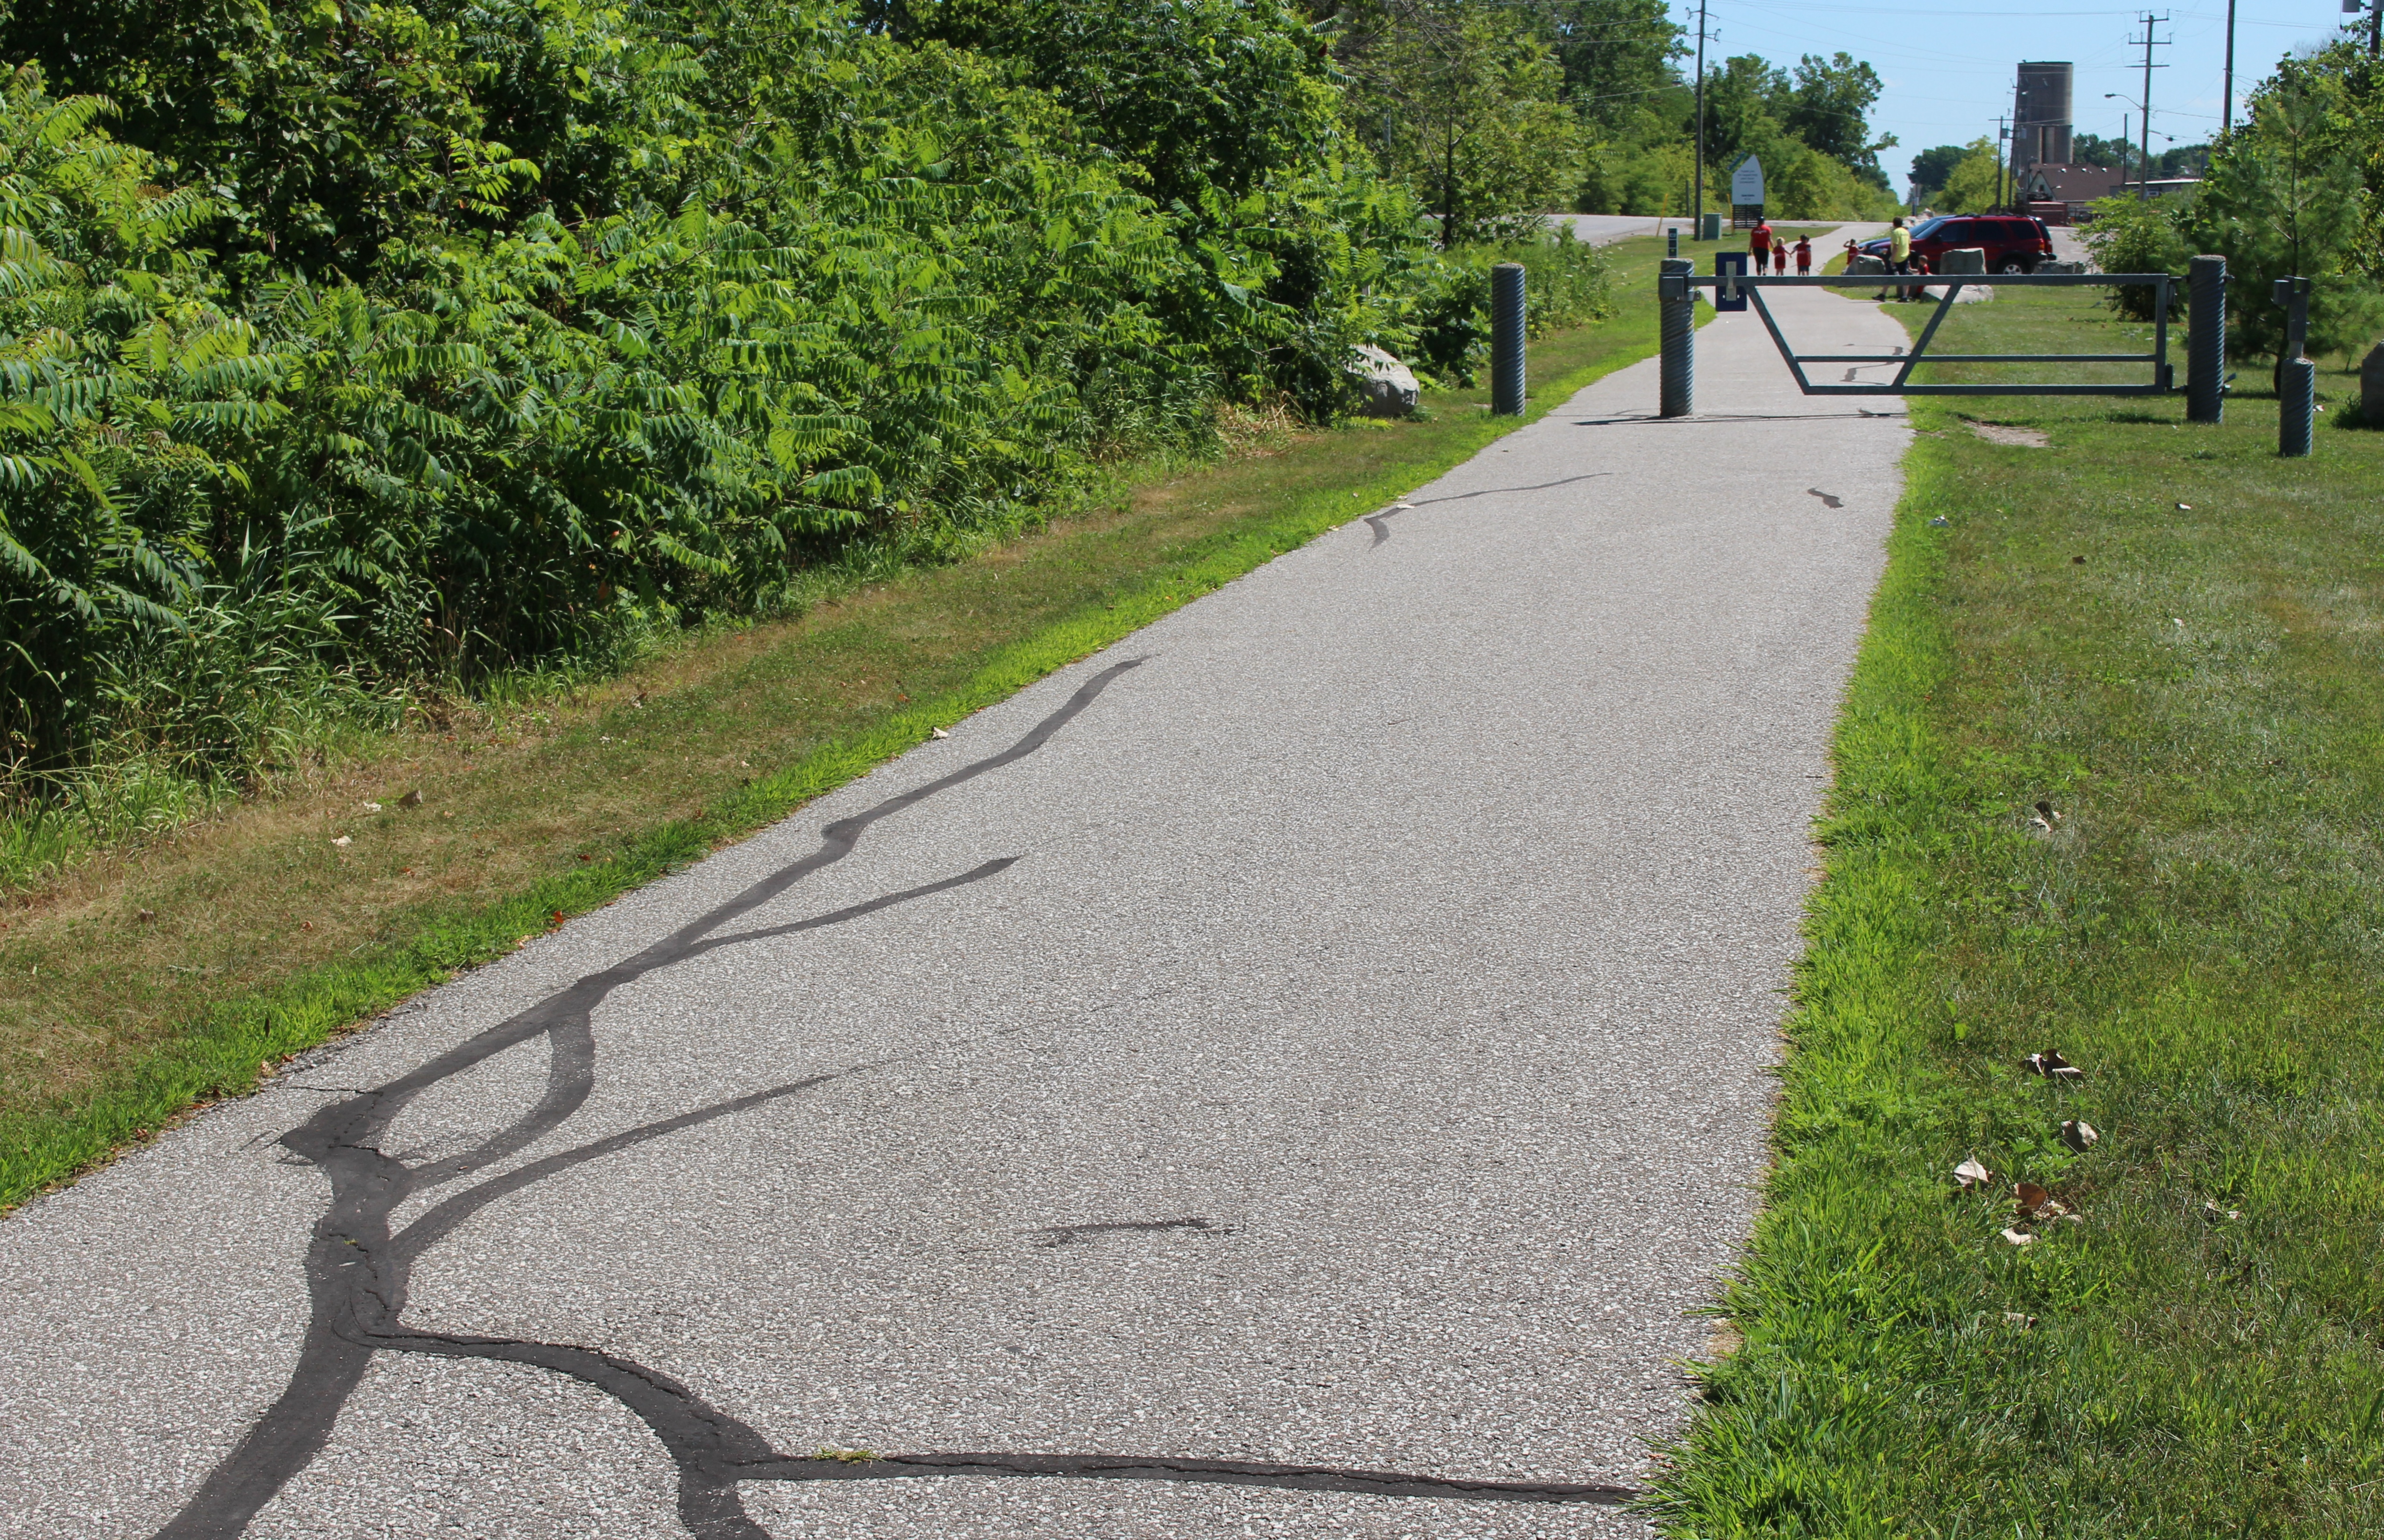 Chrysler Canada Greenway trail in the Town of Essex, July 31, 2015. (Photo by Mike Vlasveld)